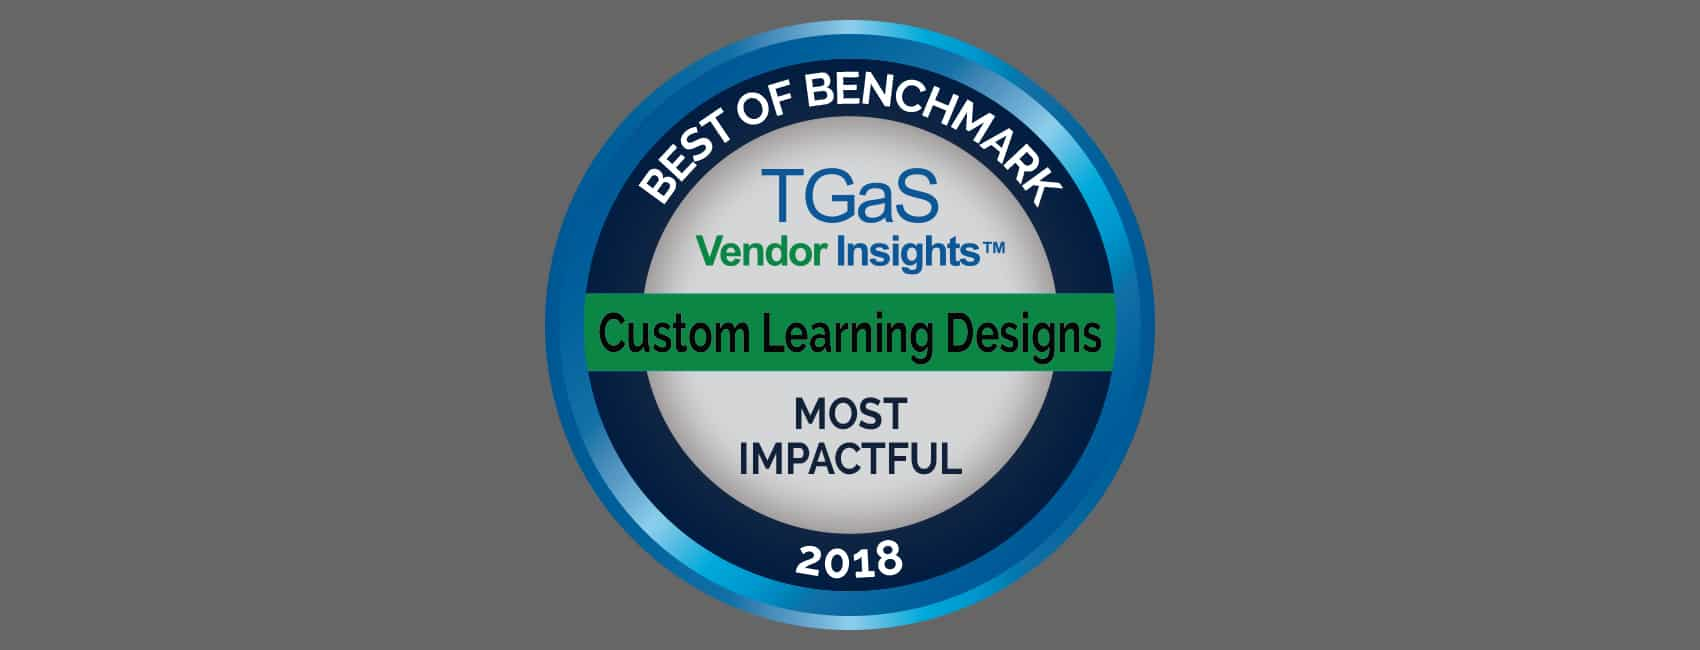 CLD Named Most Impactful Vendor 2018 by TGaS Advisors